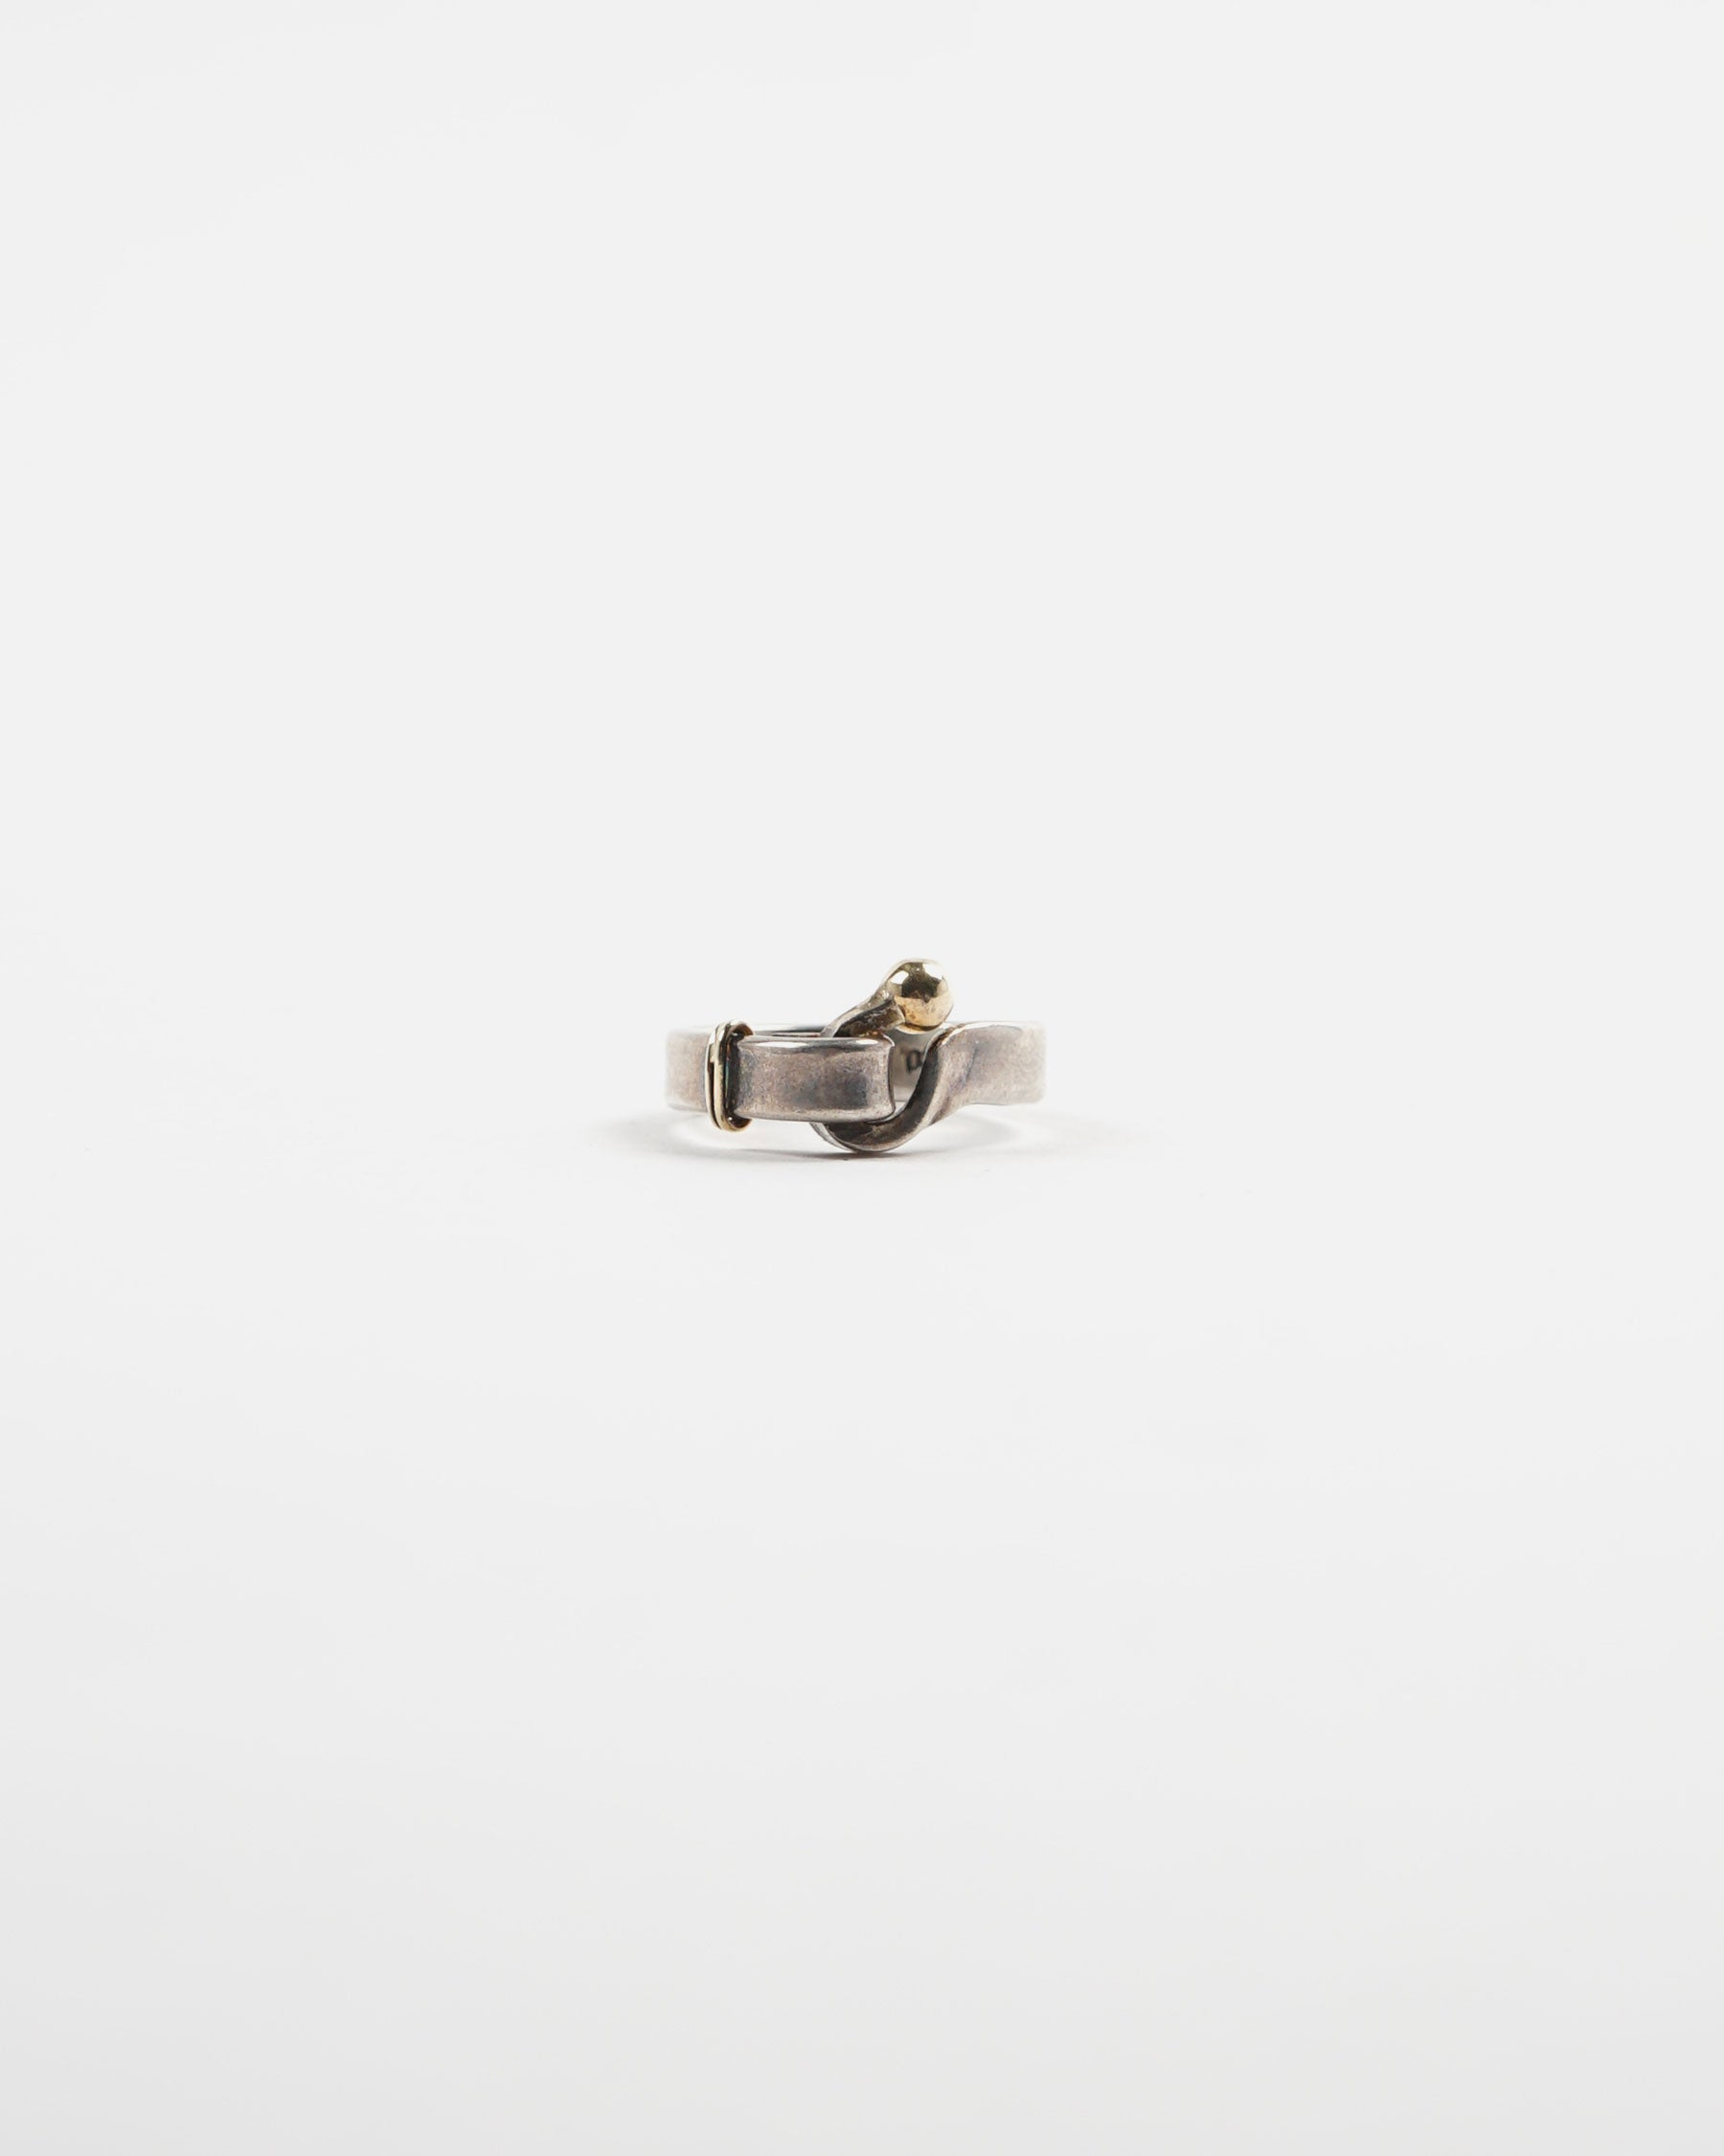 Two Tones 14k / Silver Ring